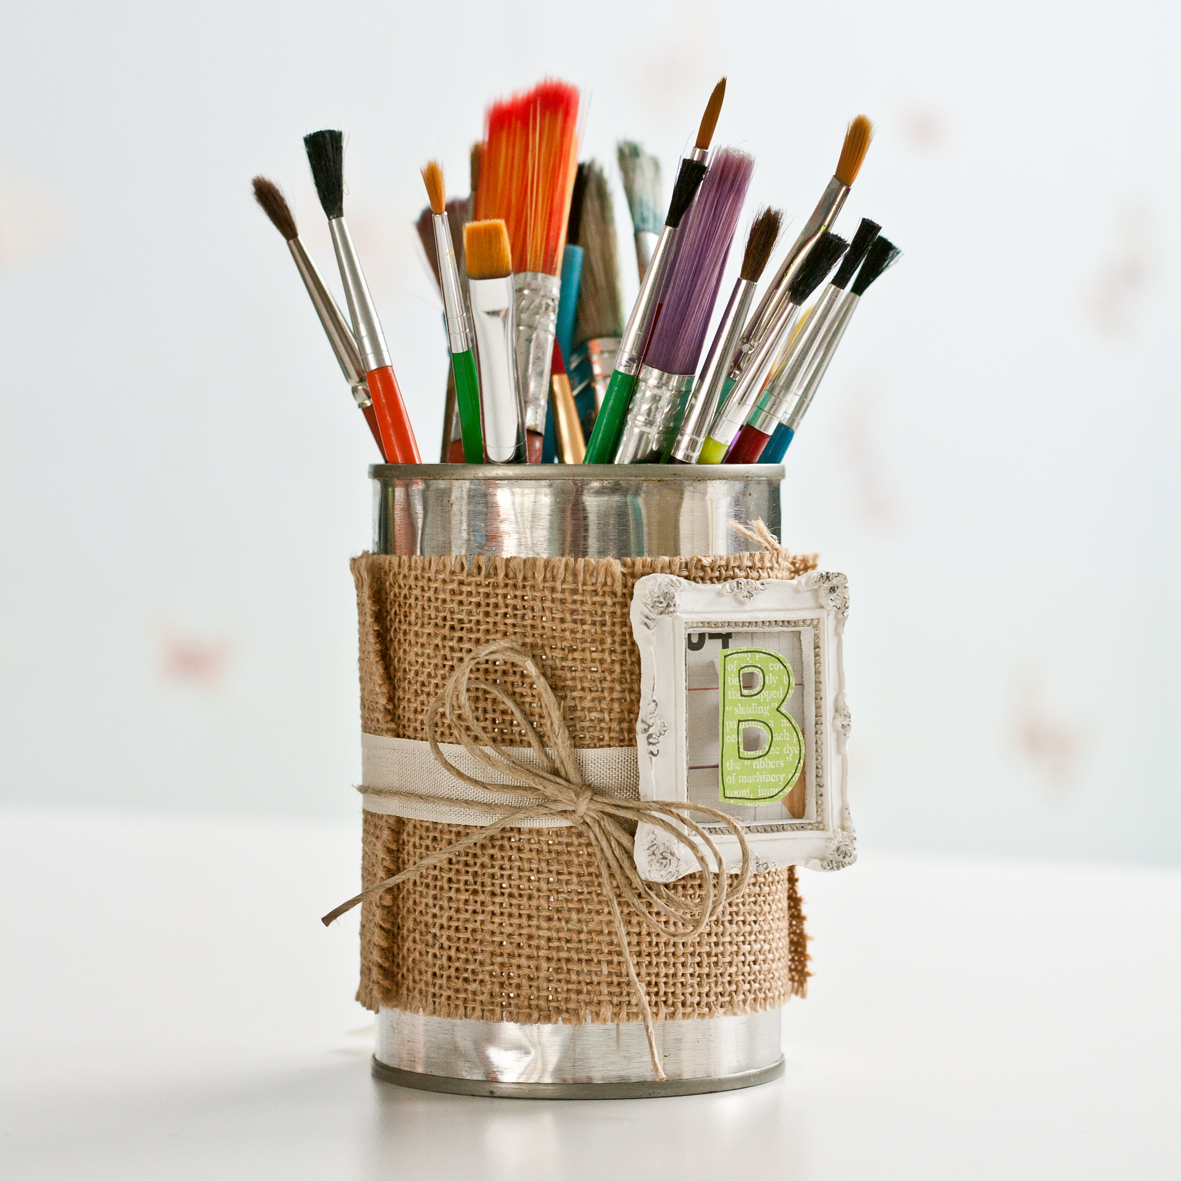 Tin can upcycled into a brush holder